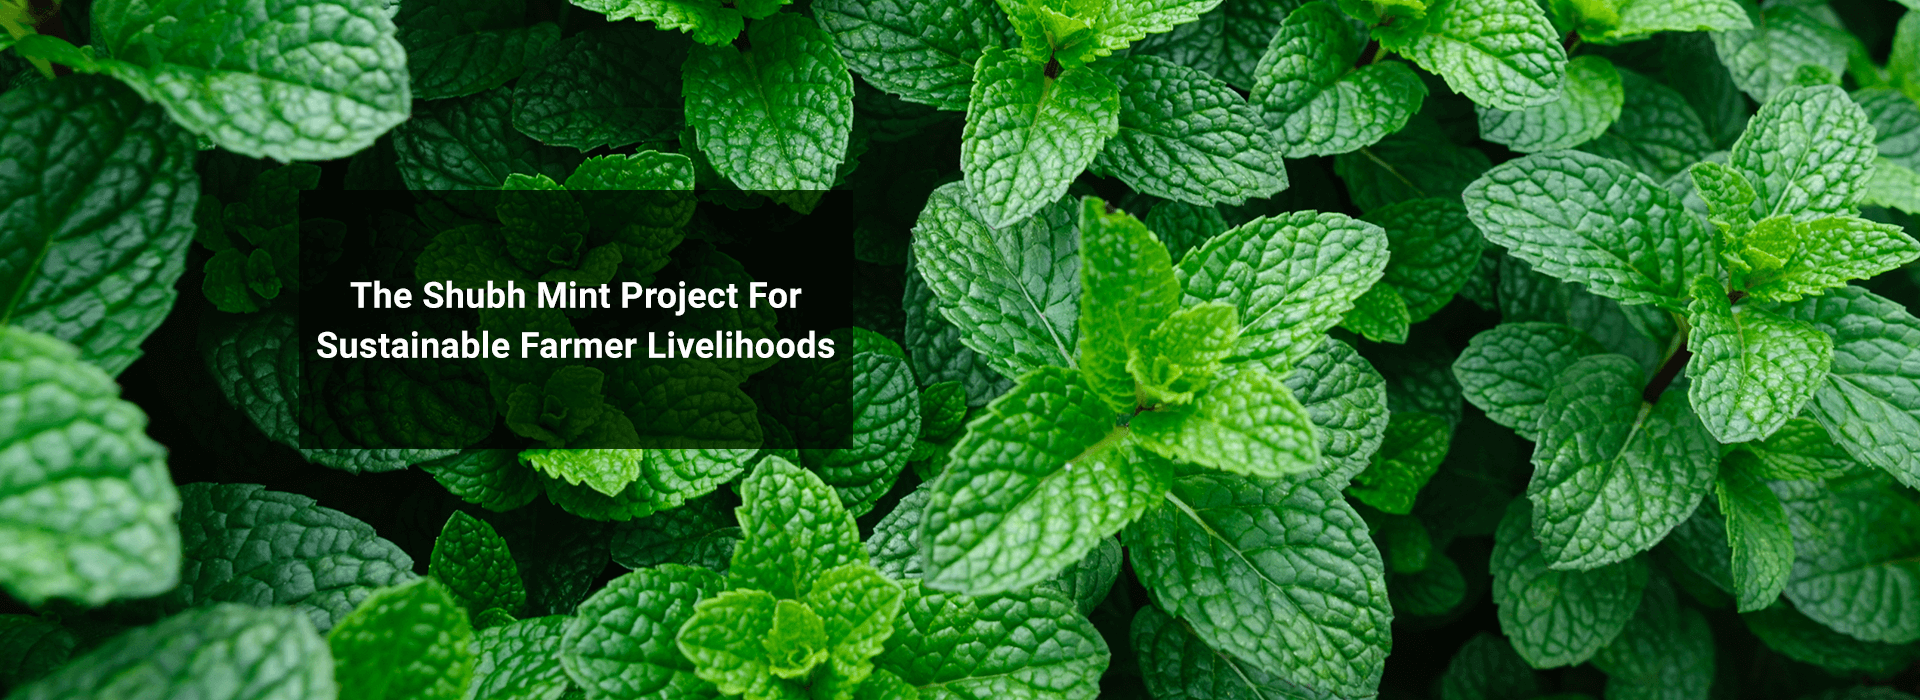 "Banner Image: ""The Shubh Mint Project For Sustainable Farmer Livelihoods"""